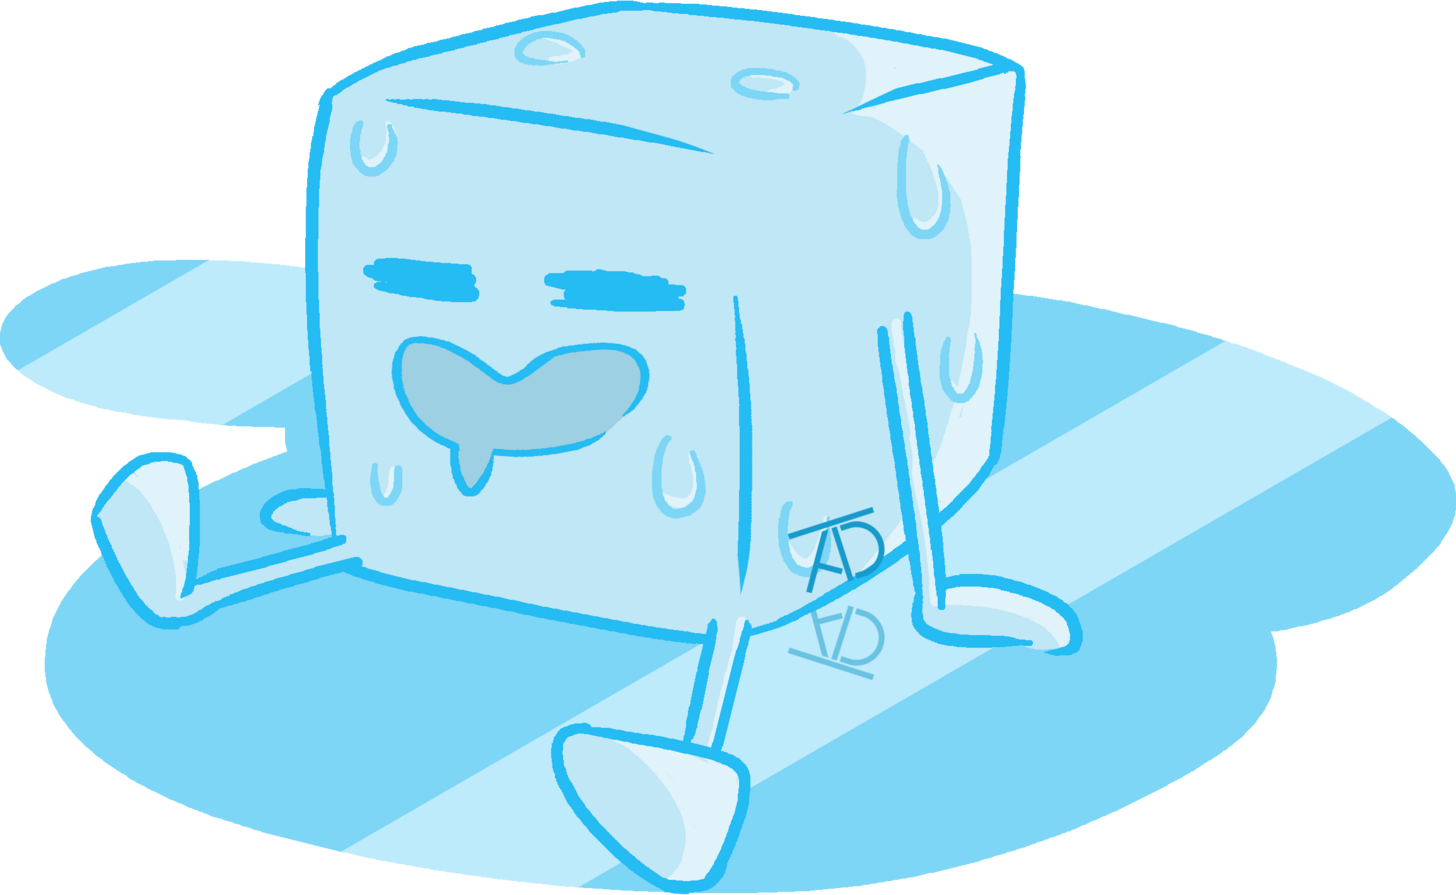 Ice cubes at getdrawings. Cube clipart drawing